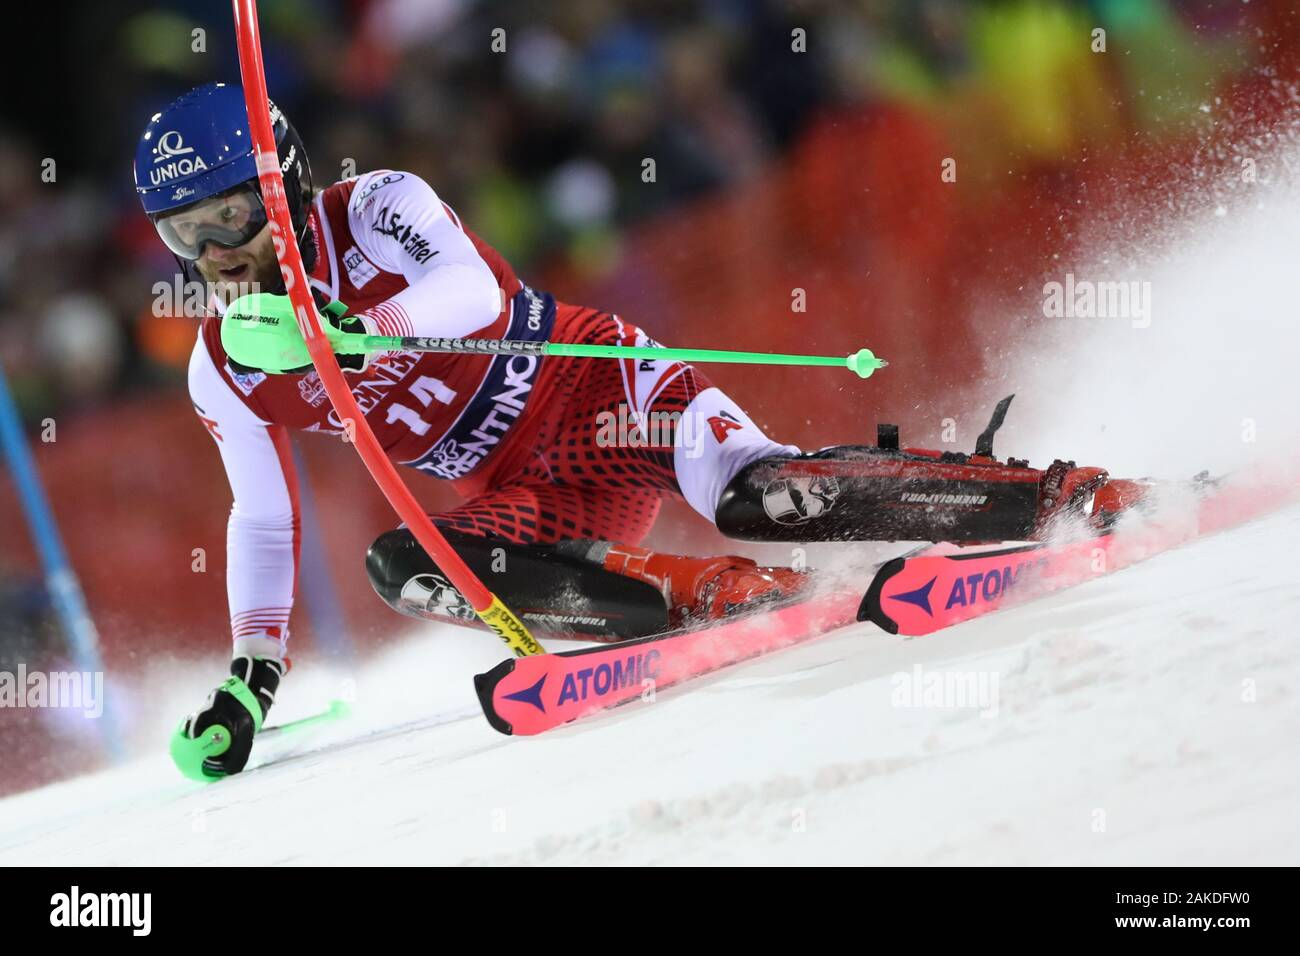 FIS Alpine Ski World Cup Men's Night Slalom in Madonna di Campiglio, Italy on January 8, 2020, Marco Schwarz (AUT) in action. Photo: Pierre Teyssot/Espa-Images Stock Photo